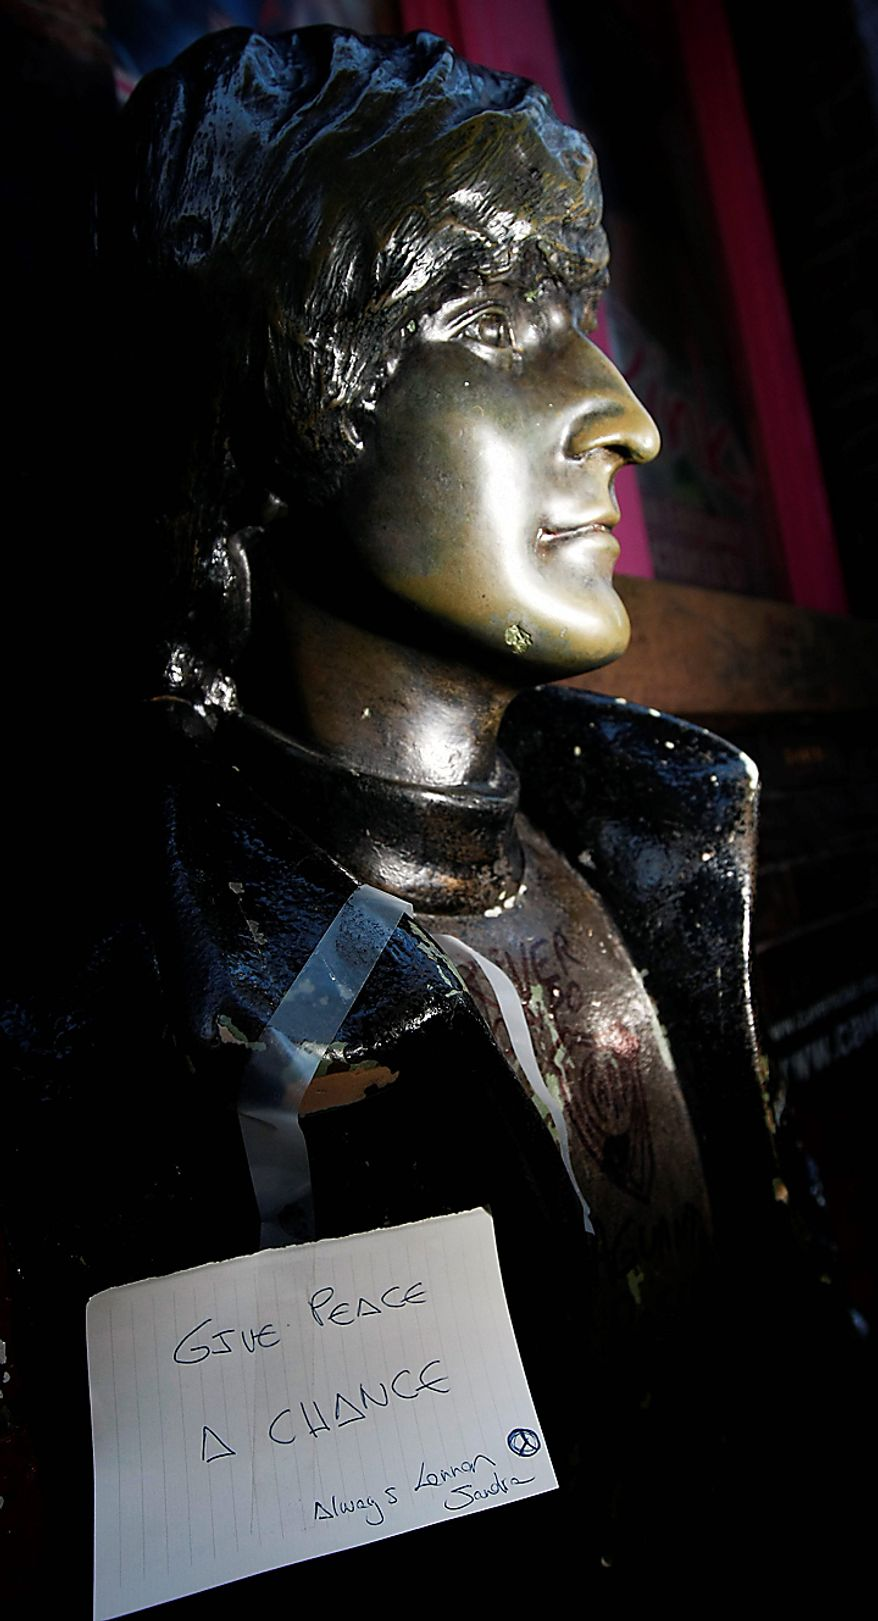 A note left on a statue of John Lennon outside the Cavern Pub in Mathew Street, Liverpool, England, Wednesday Dec. 8, 2010. Beatles fans planned to mark the 30th anniversary of John Lennon's death with a candlelit vigil at the city's European Peace Monument, which is dedicated to John Lennon. (AP Photo/Tim Hales)